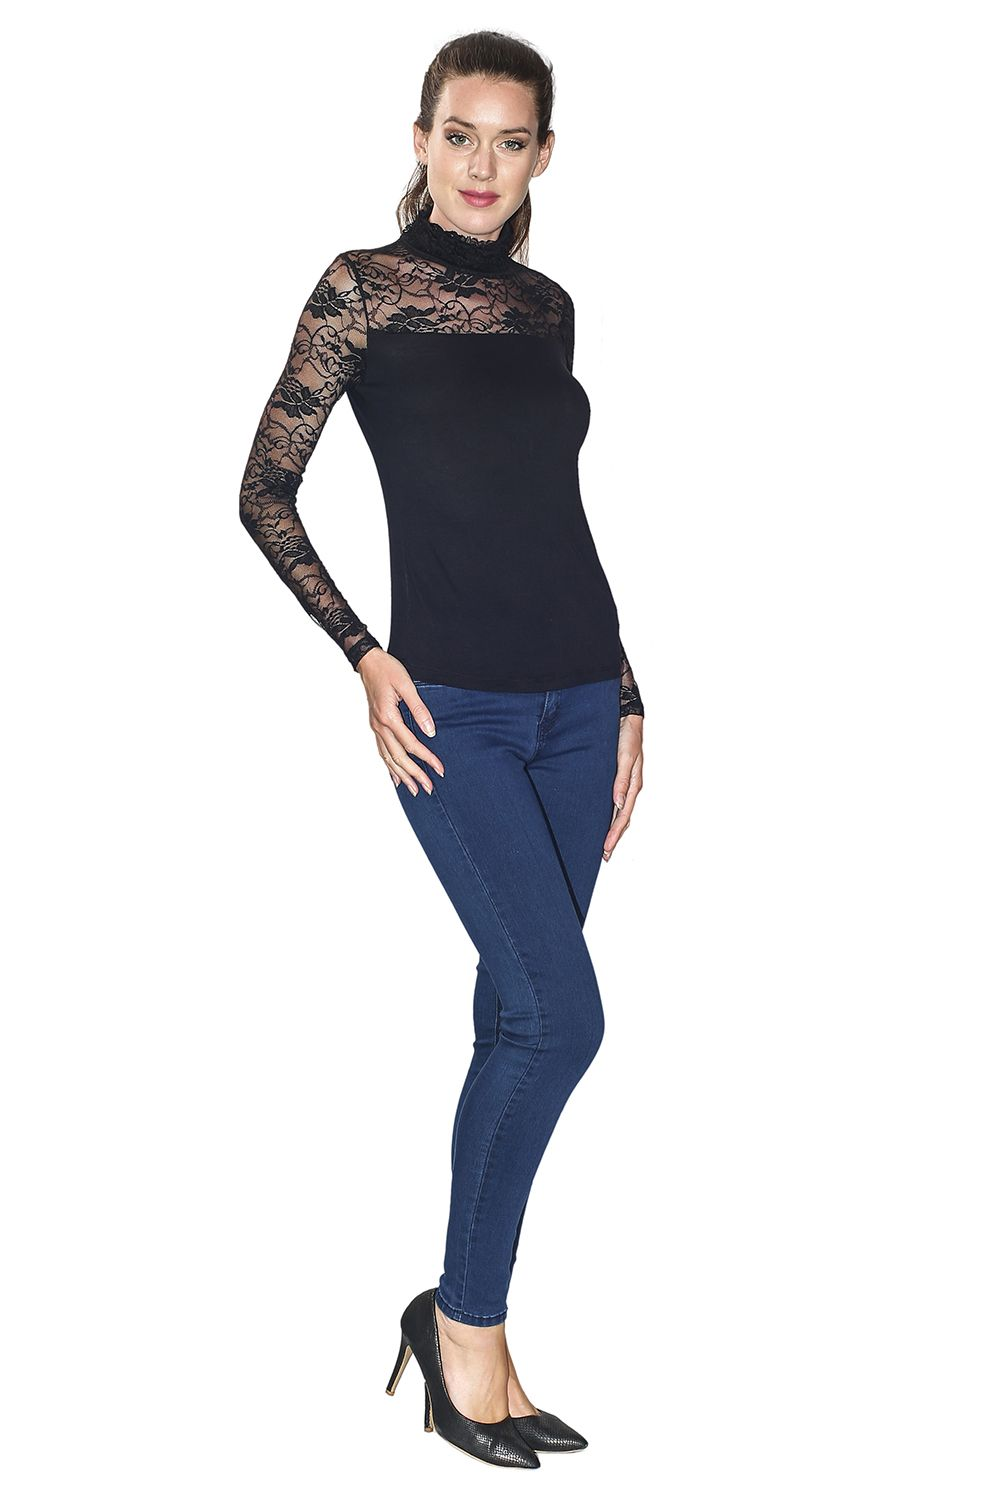 Assuili Ruffle Neck Long Sleeve Lace Top in Black